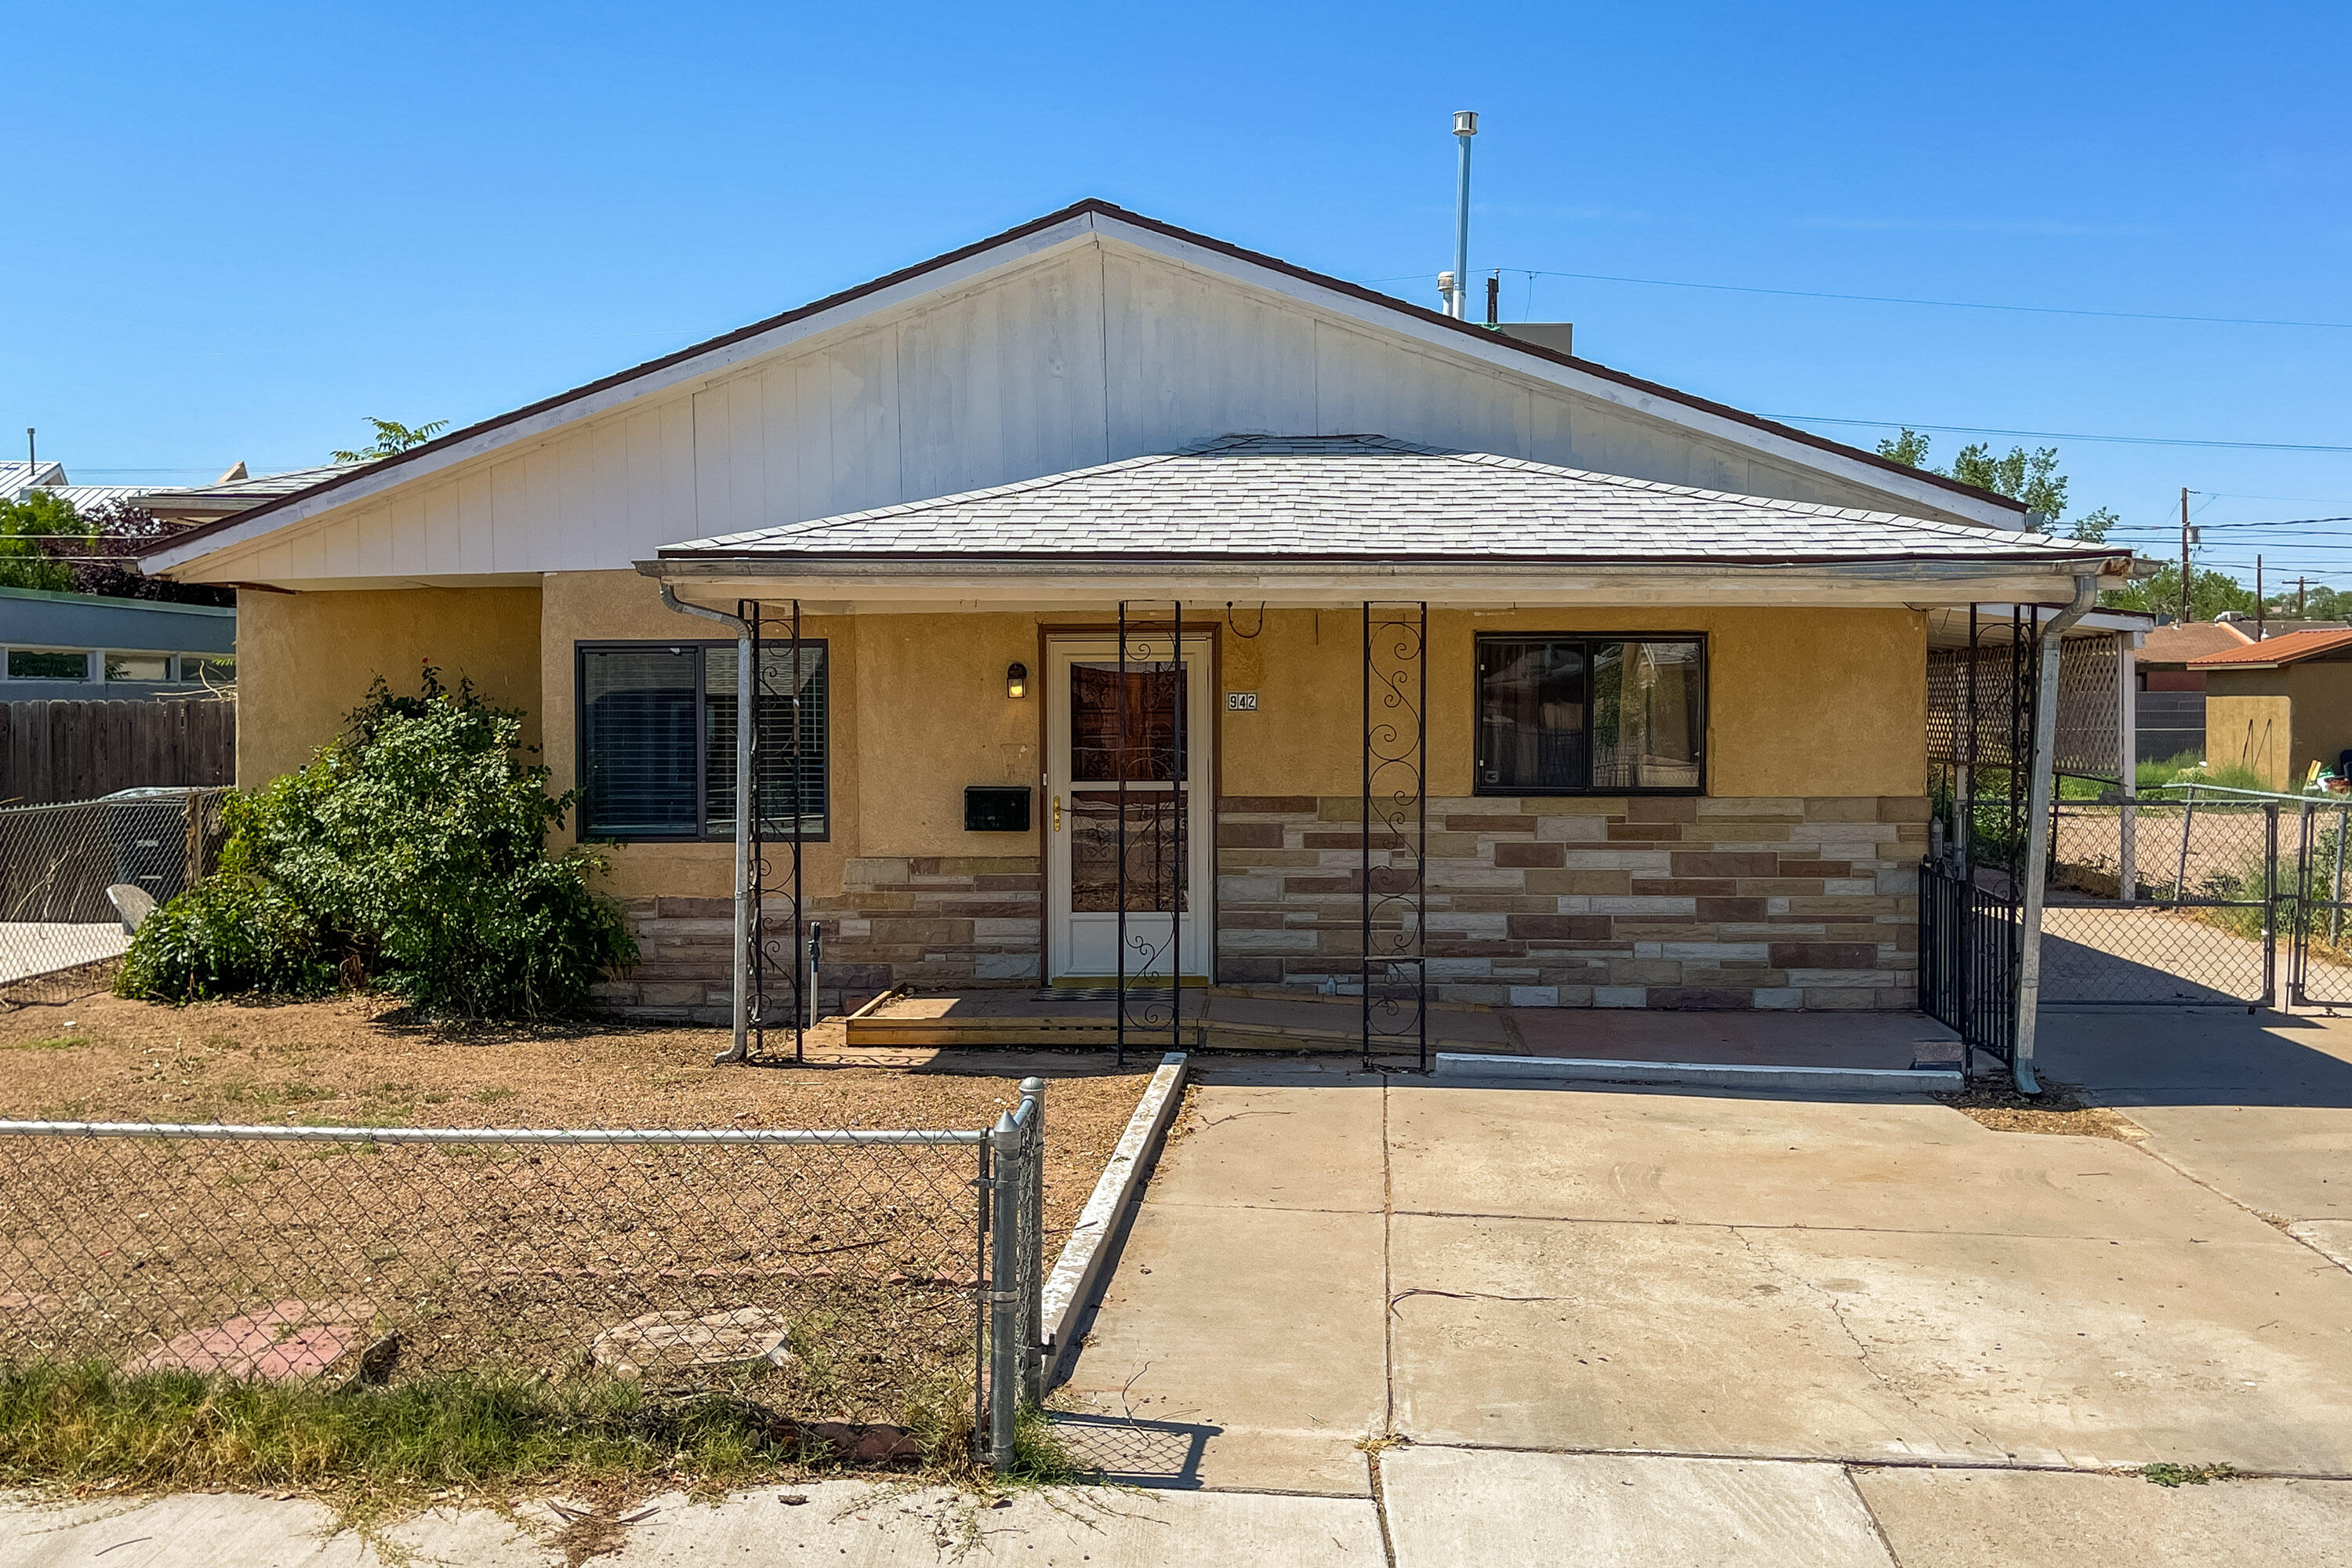 Lots of living space in this North Valley Charmer.  Two Living areas, Three bedroom, two bath Home. New carpet just installed. Large pantry storage area off of  the kitchen. extra Large back yard with a storage shed. Separate Laundry room with a sink.  Large Carport & Backyard Access. A Great Place to Call Home! Take a Look Today!